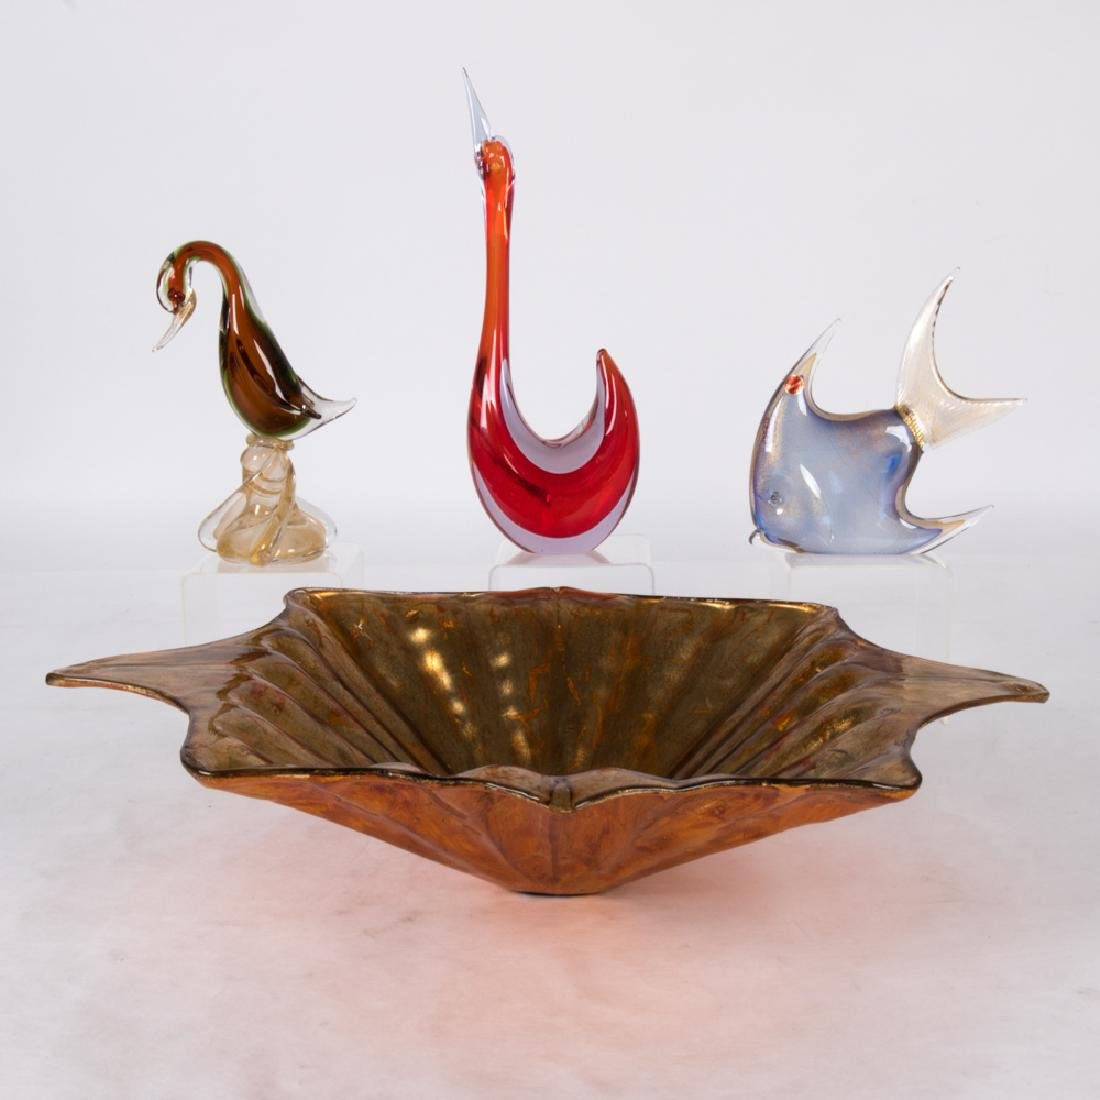 A Miscellaneous Collection of Murano Glass Decorative